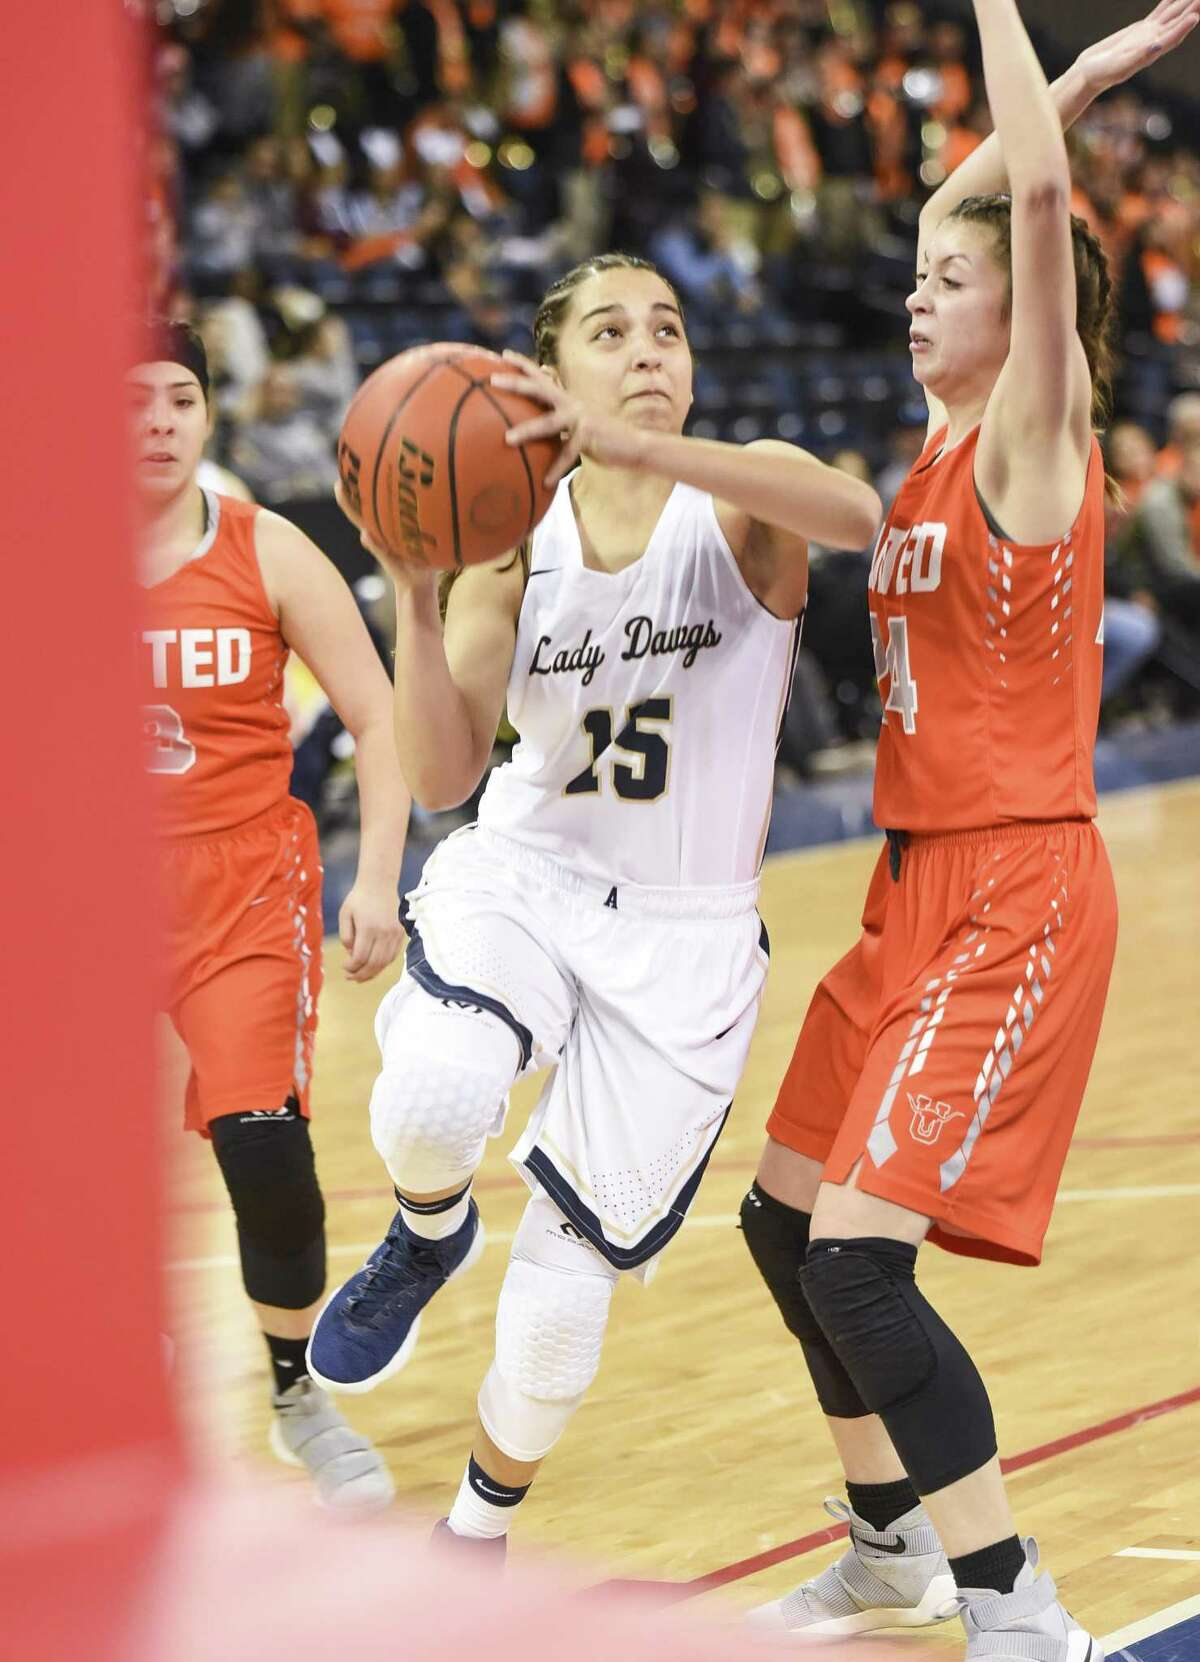 McCayla Munoz and Alexander will face off with Audrey Batey and United in the third round of the postseason searching for their third win over UHS this year. Alexander defeated San Benito 62-39 Friday while United beat Edinburg 58-53.